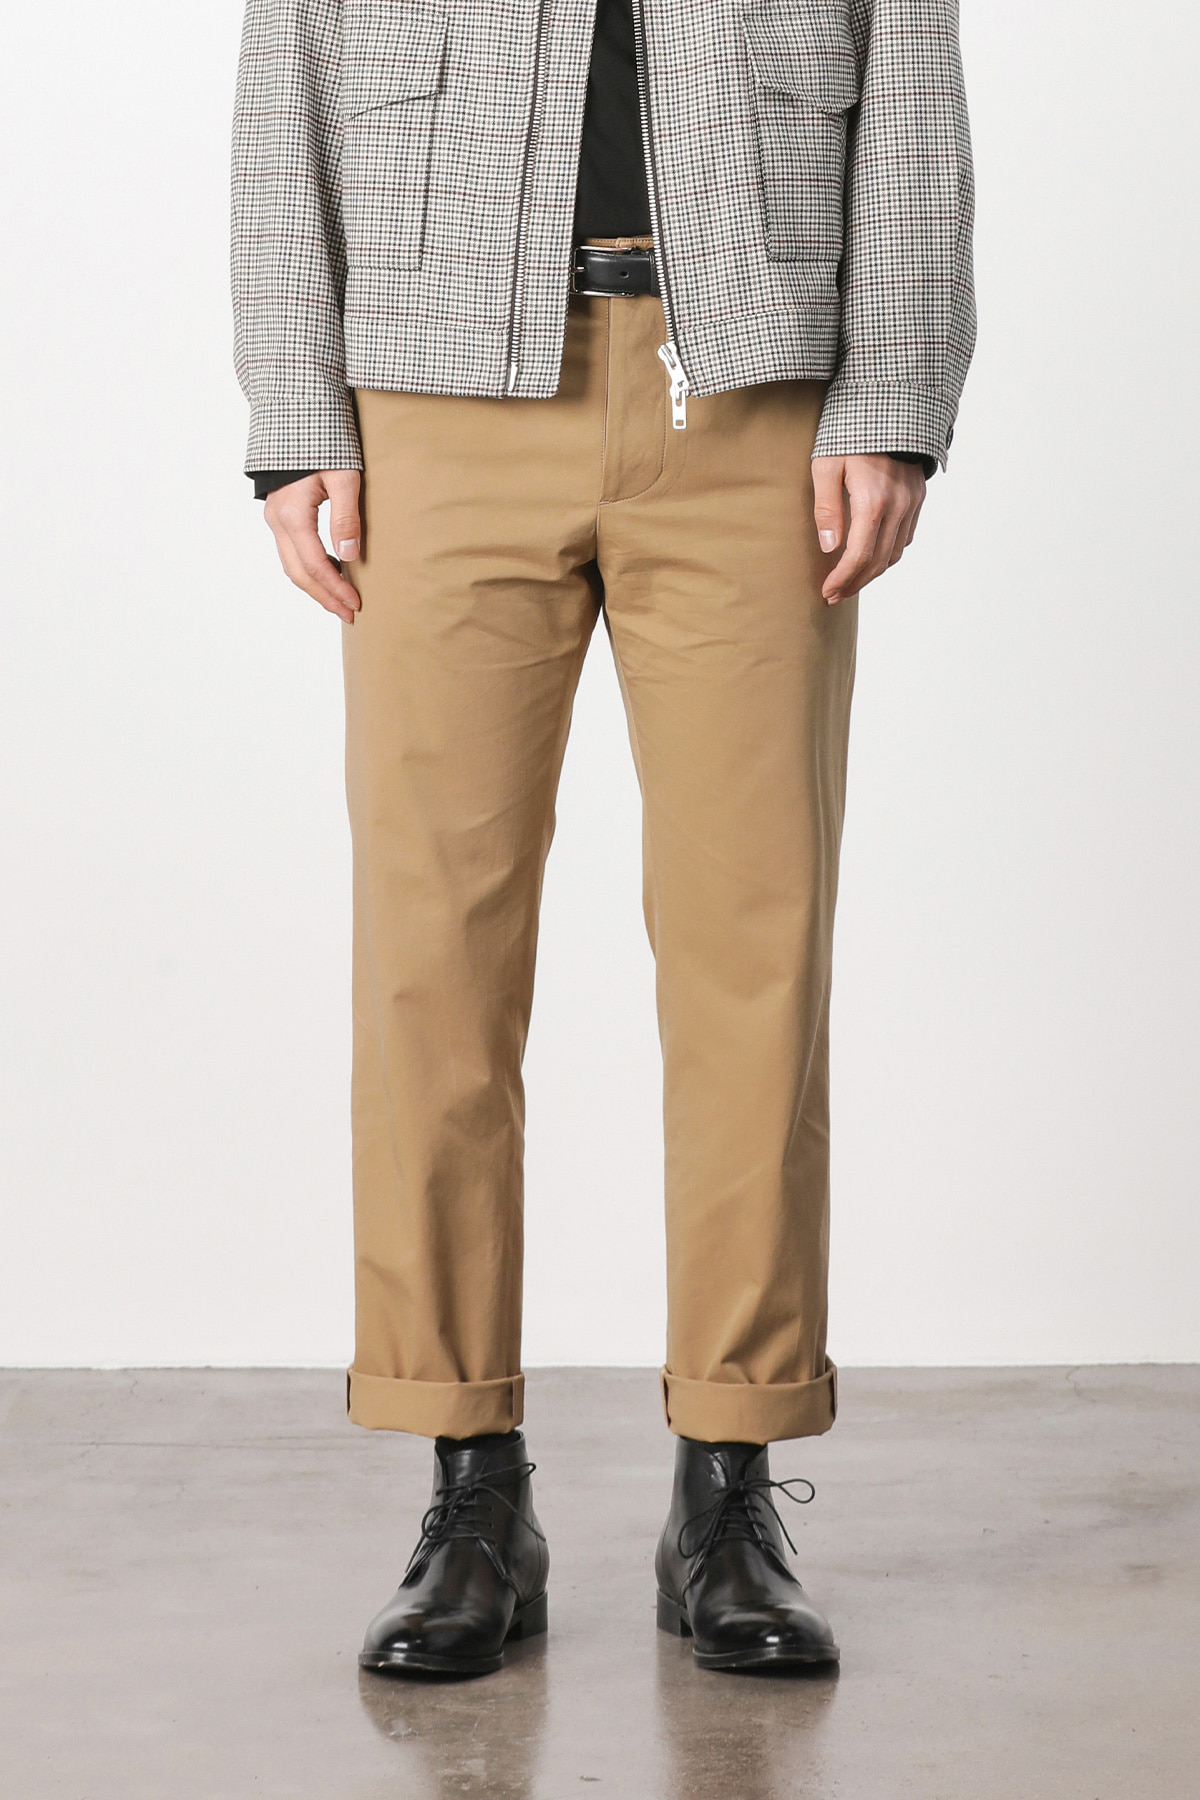 페이탈리즘 Edinburgh cotton crop pants (beige) #jp12